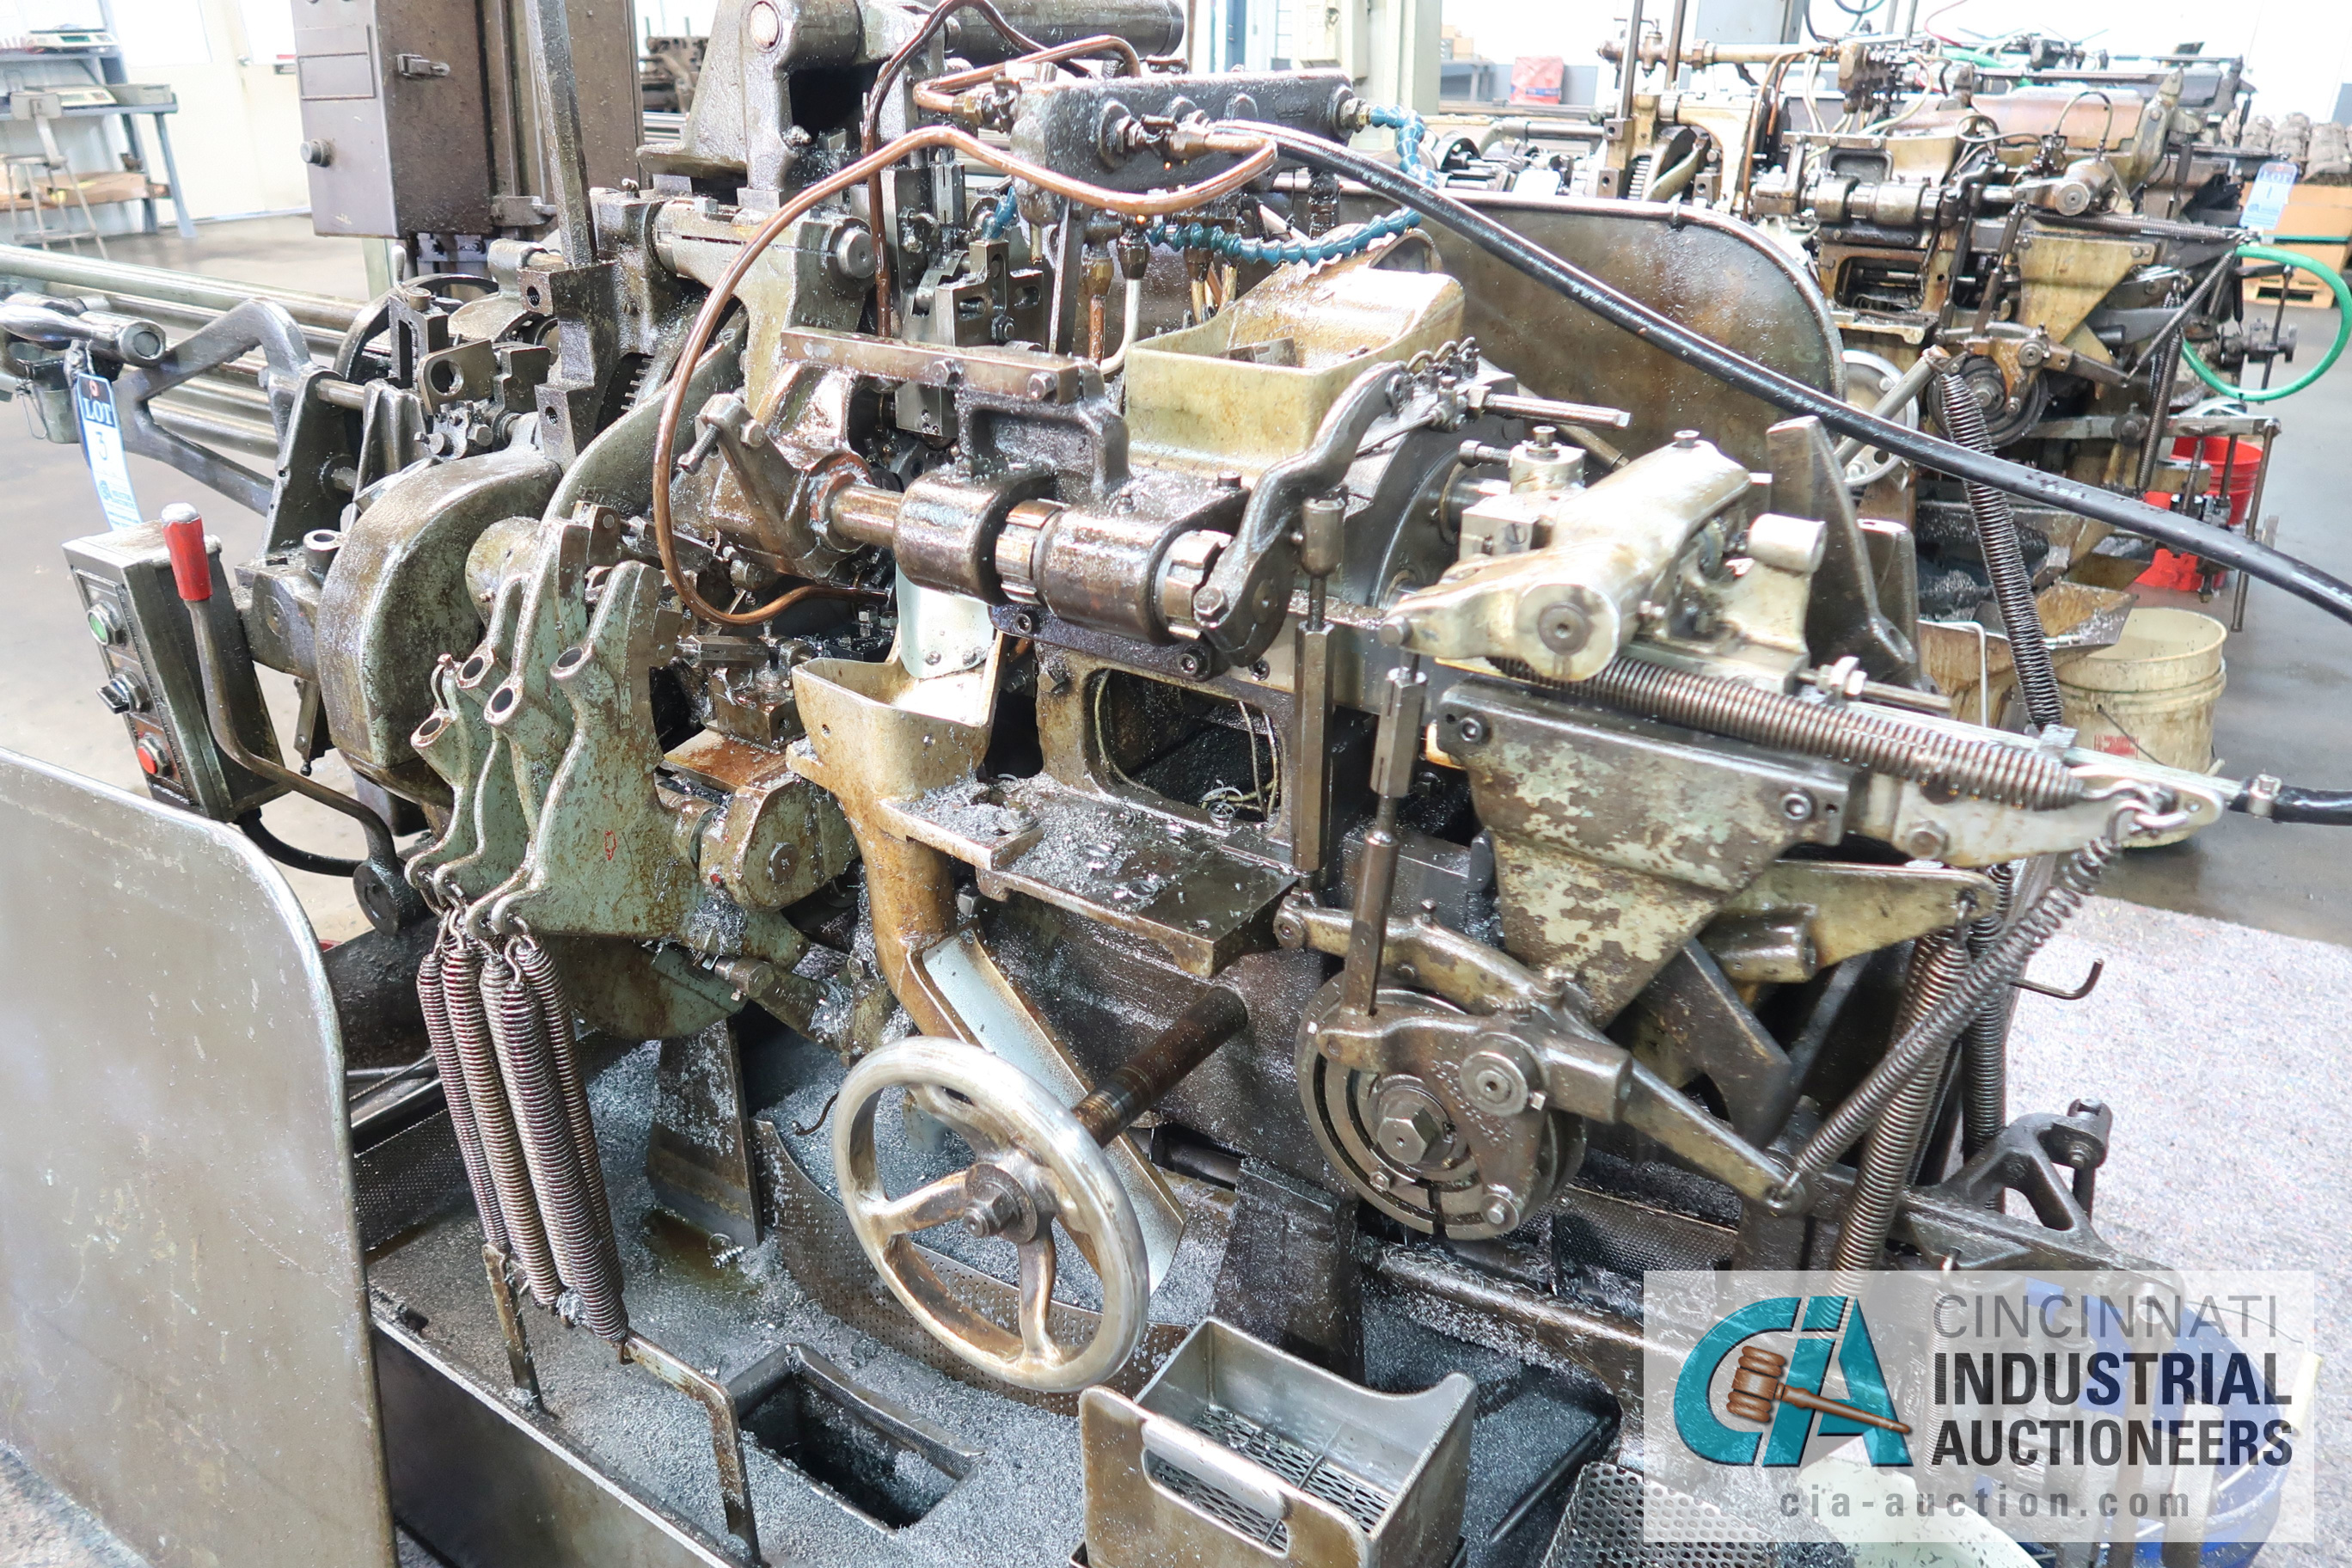 """3/4"""" DAVENPORT 5-SPINDLE SCREW MACHINE; S/N 11002 (NEW 11-1981) WITH 4TH POS. THREAD ROLL, PICK OFF, - Image 2 of 4"""